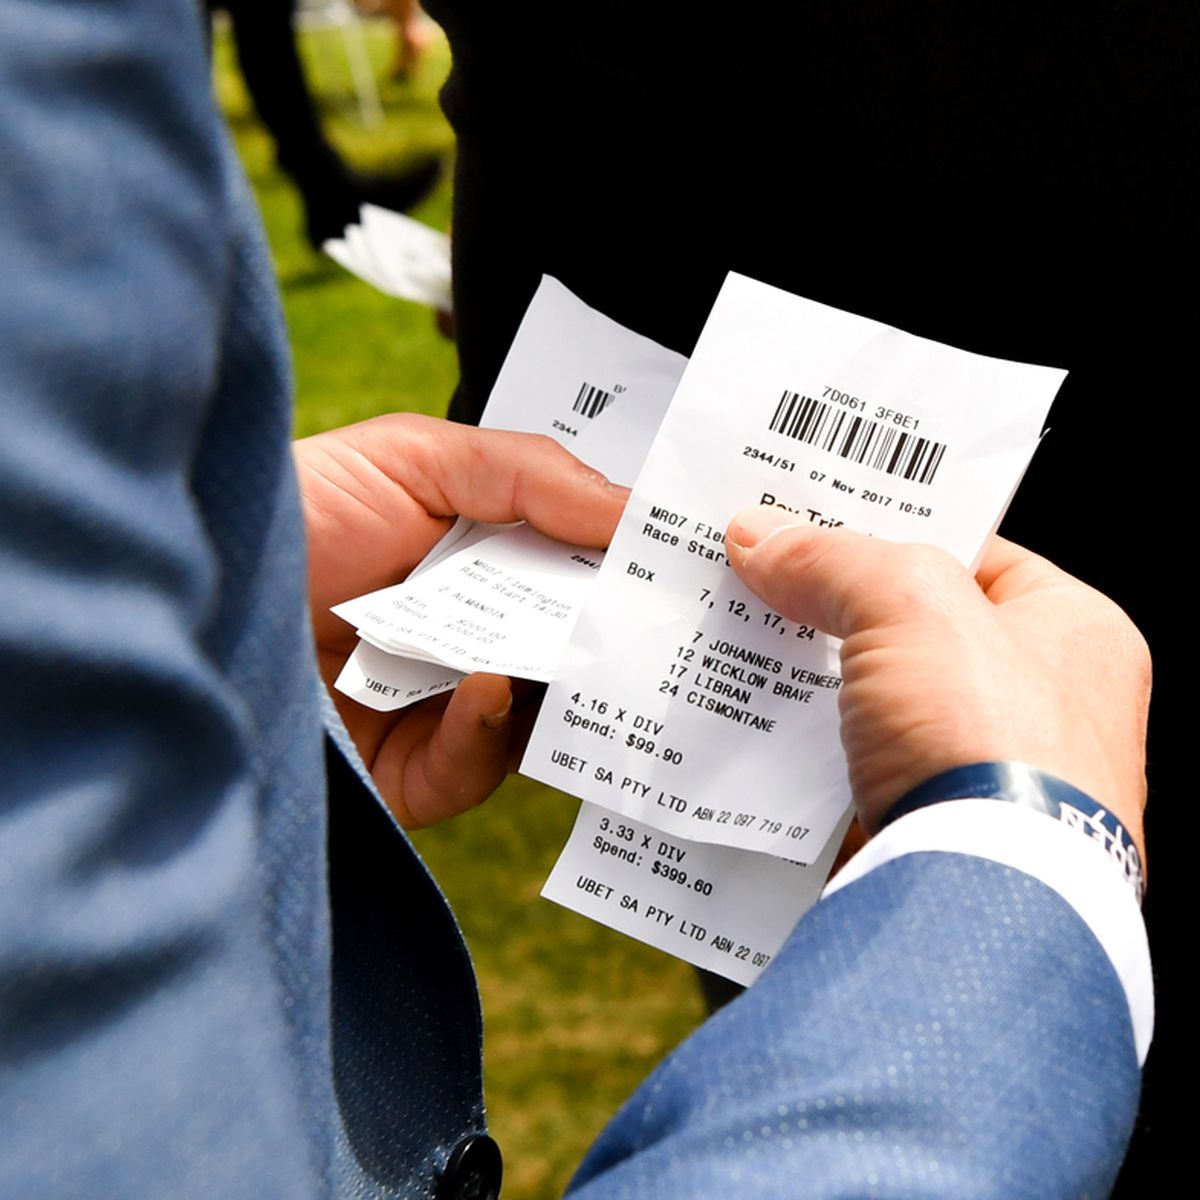 betting in melbourne cup